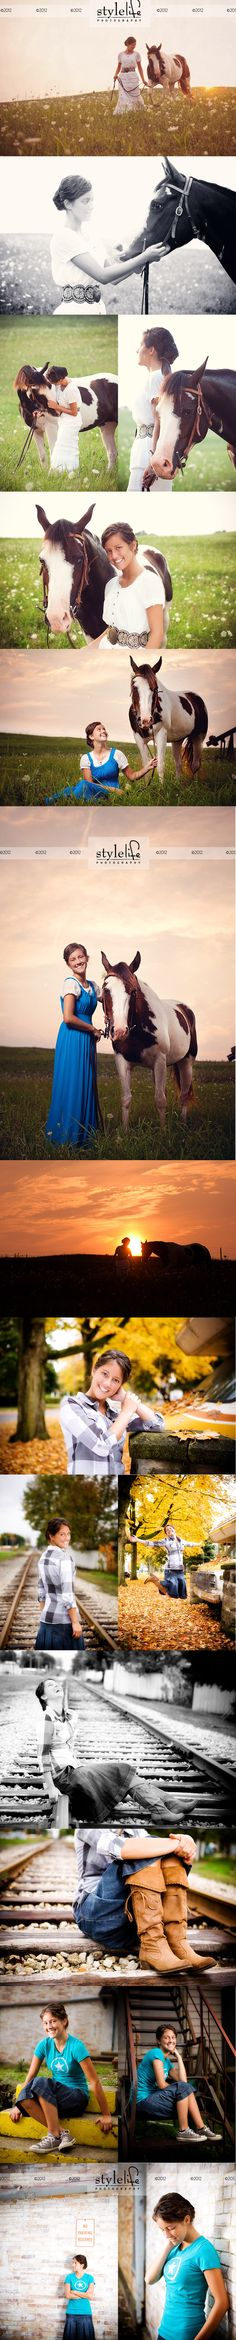 beautiful portrait session for senior girl with horse Quotes About Photography, Equine Photography, Senior Photography, Photography Ideas, Portrait Photography, Farm Senior Pictures, Senior Photos, Senior Portrait Outfits, Senior Portraits